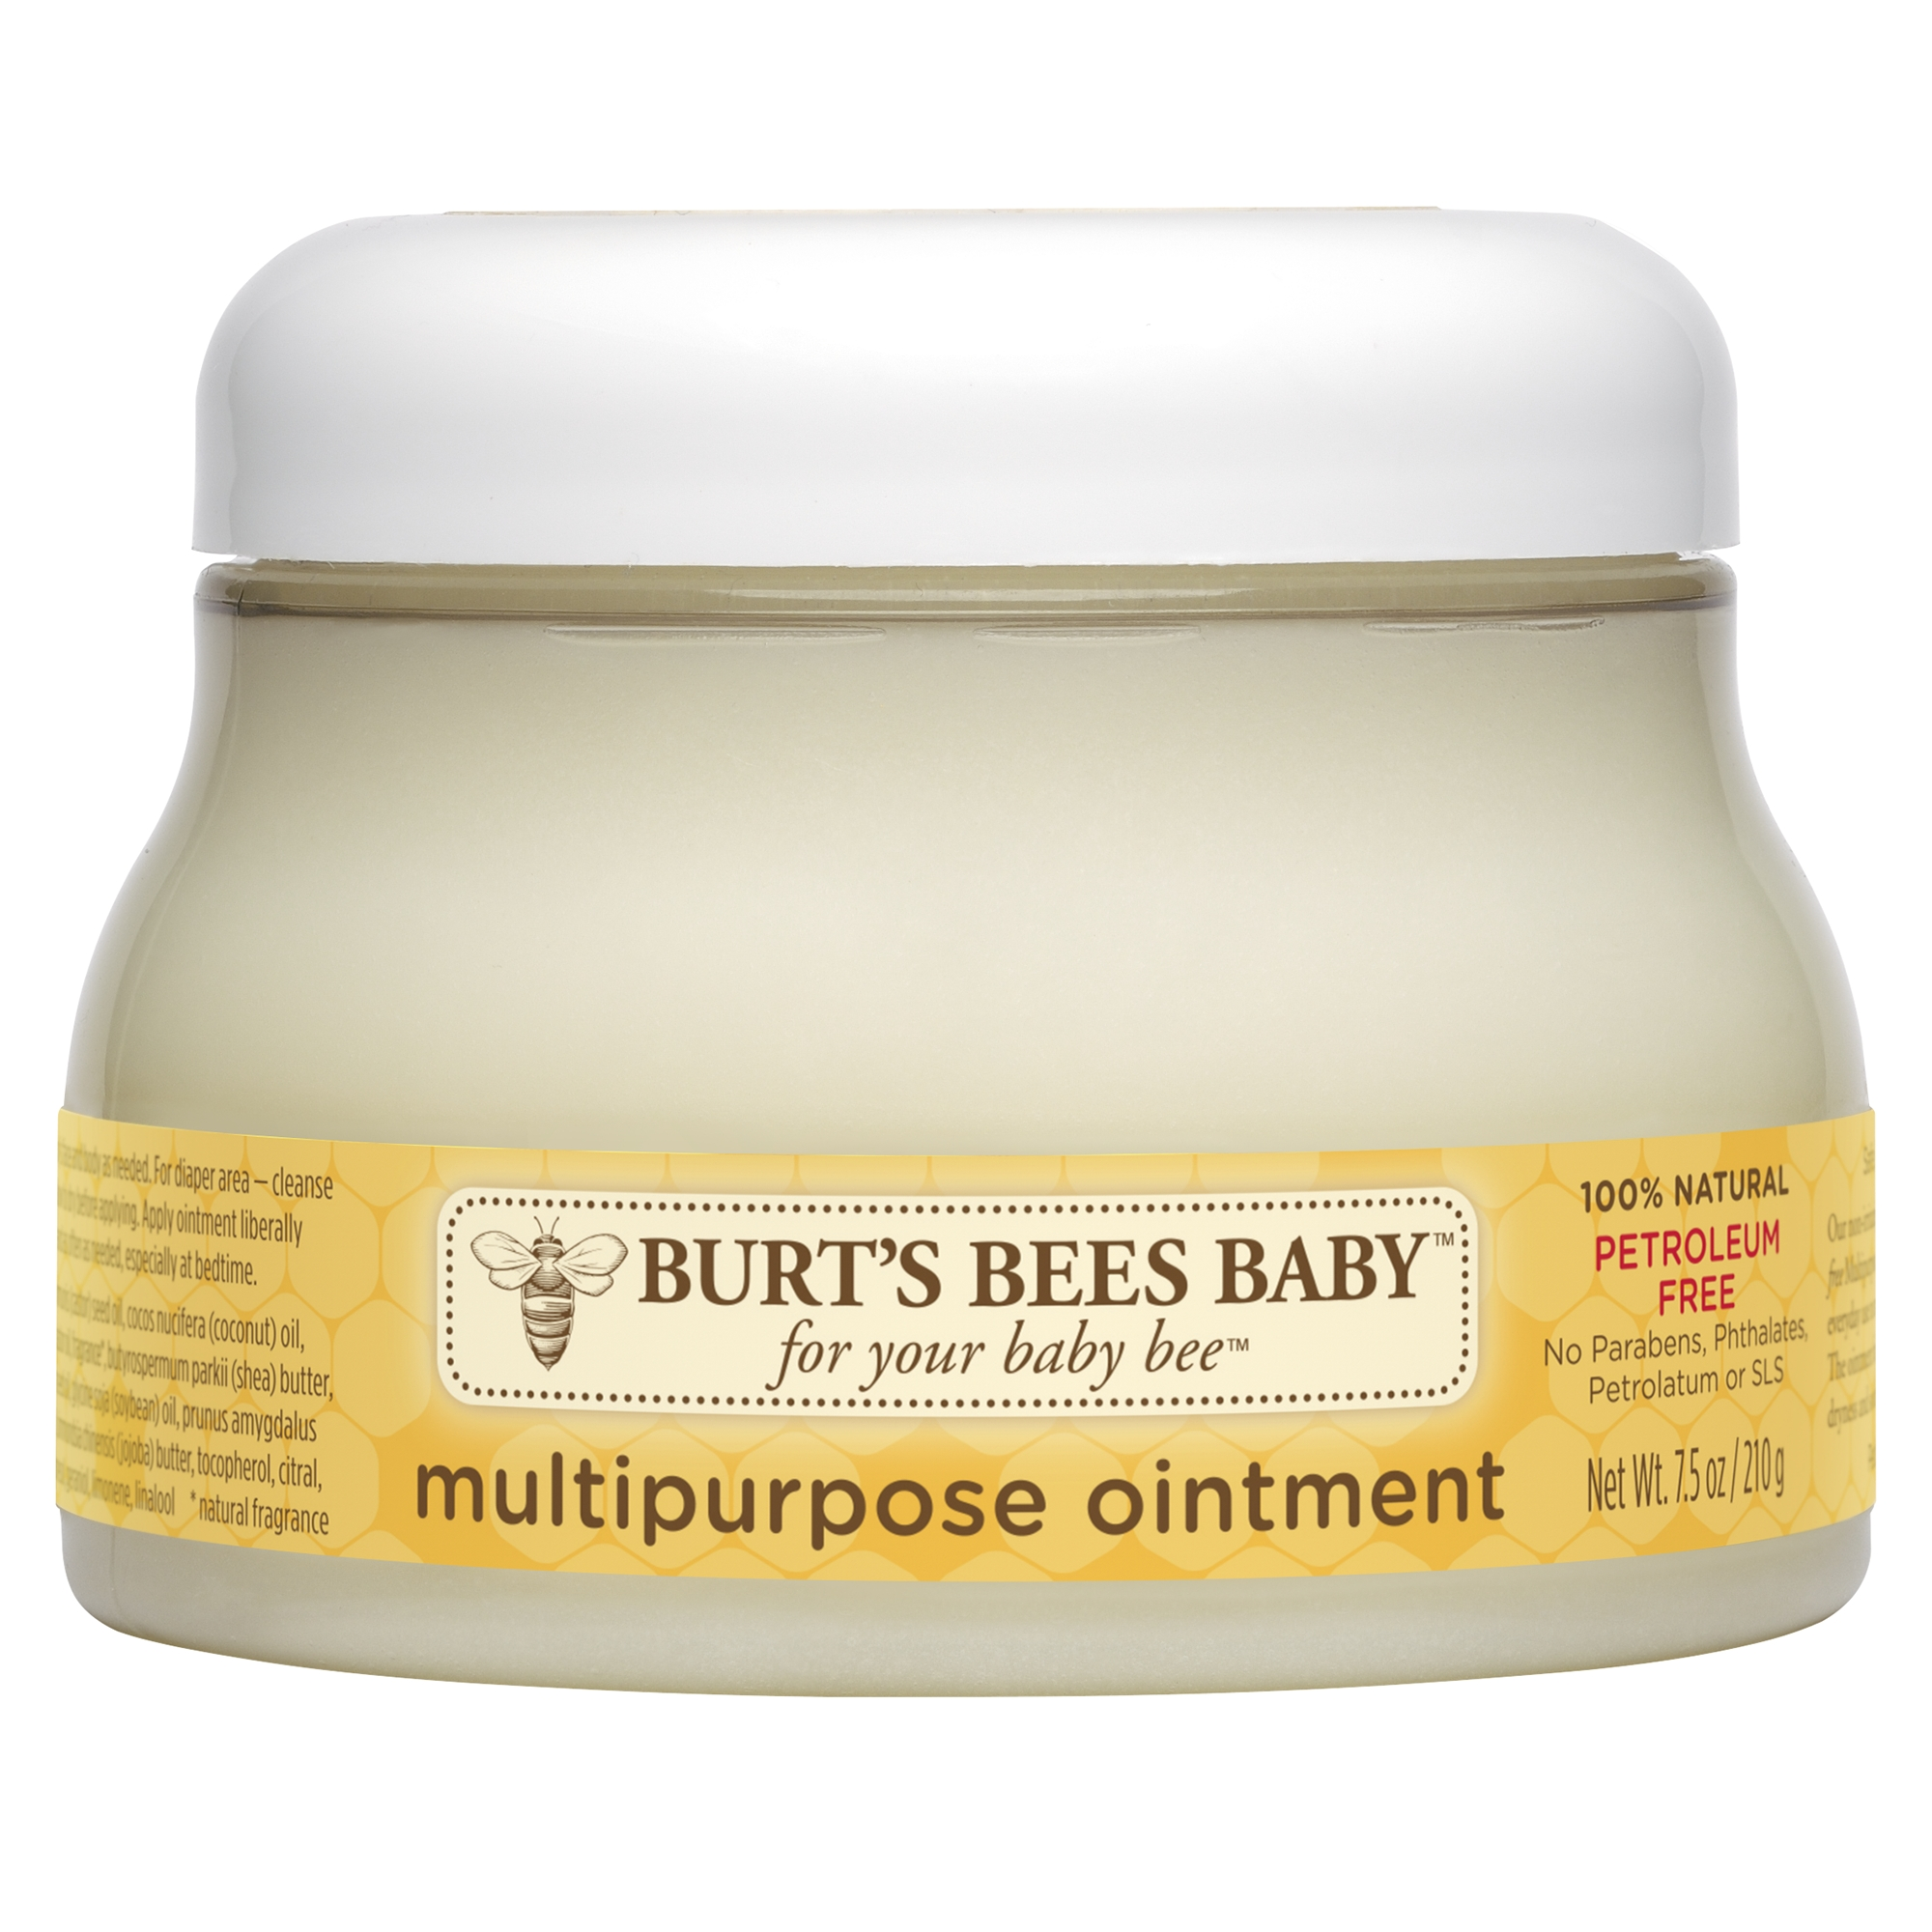 Burt's Bees Baby 100% Natural Multipurpose Ointment, Face & Body Baby Ointment - 7.5 oz Tub